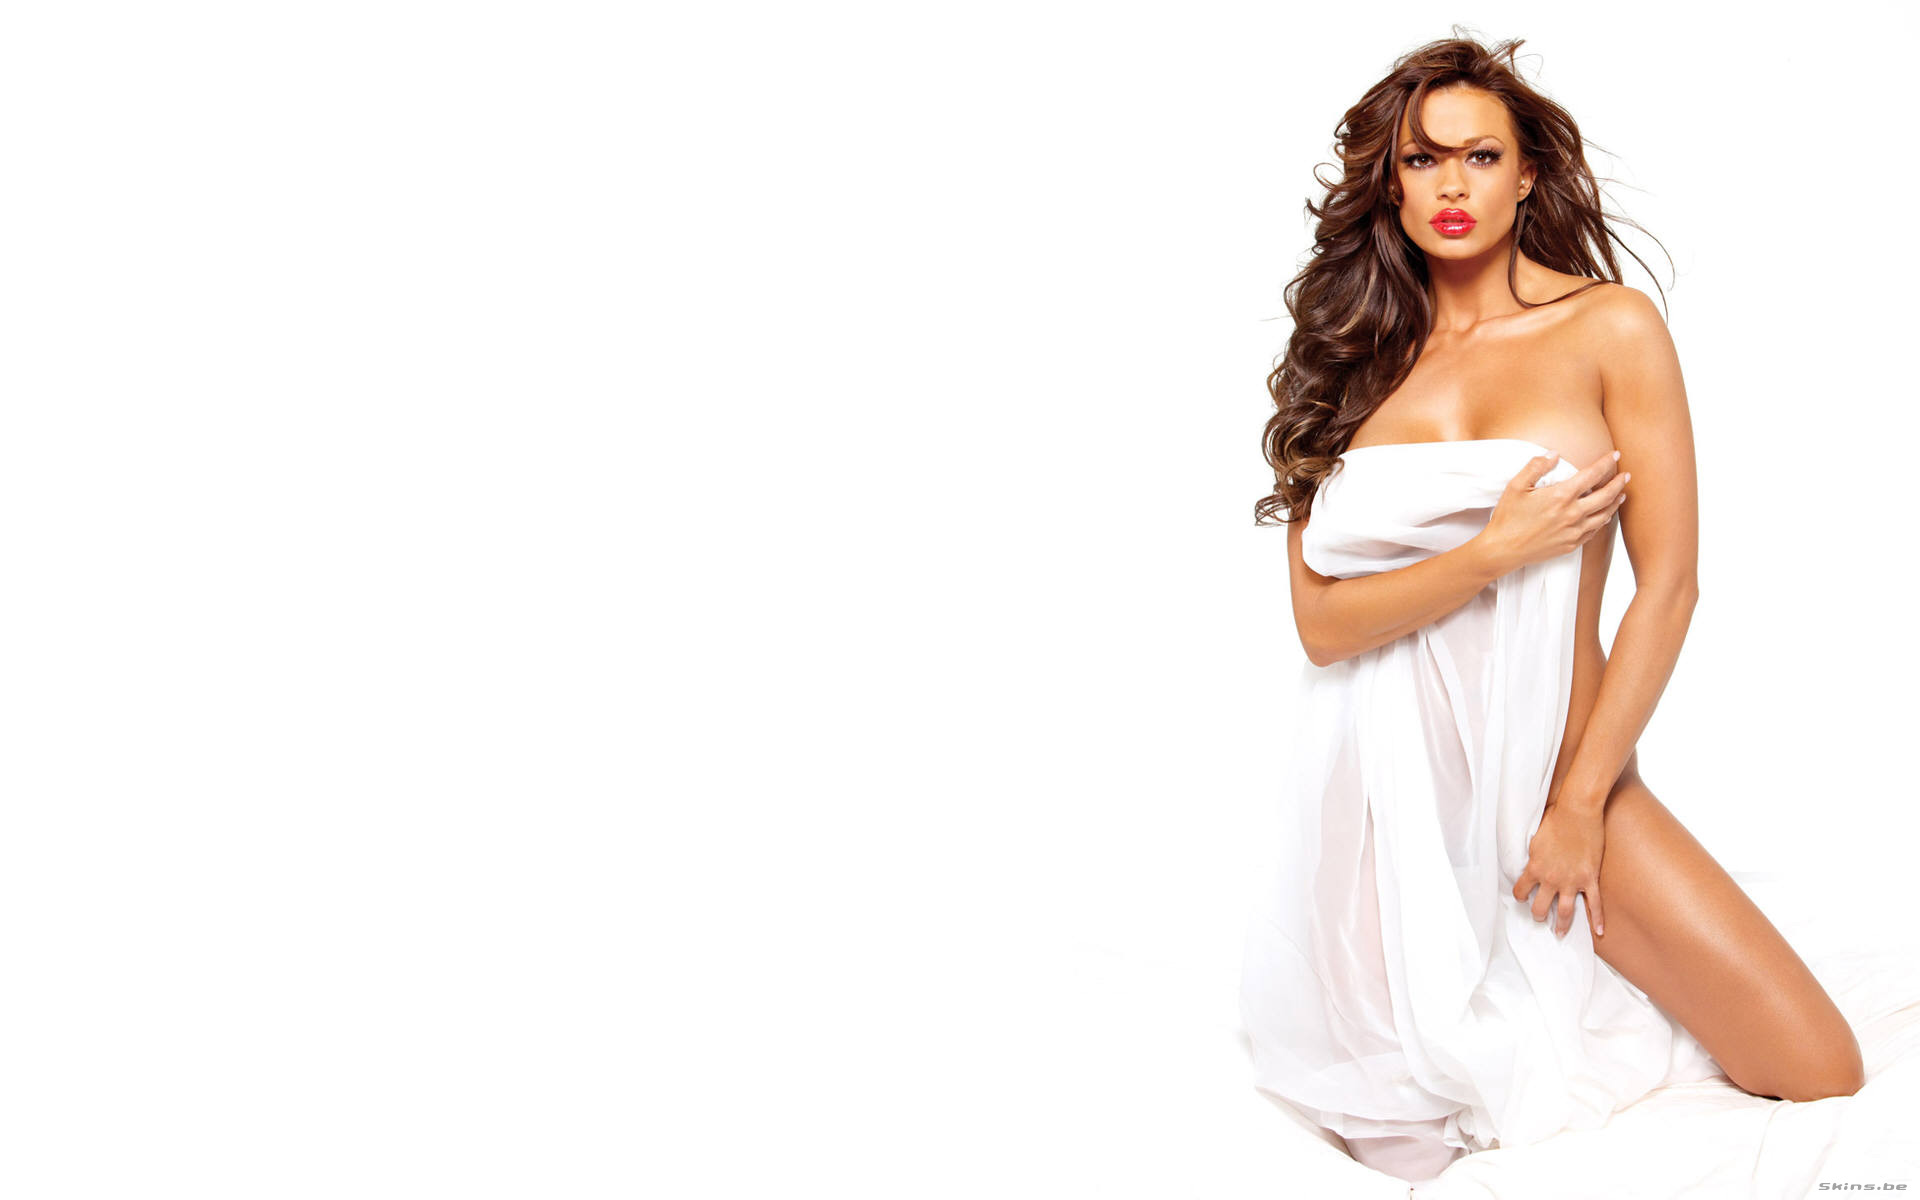 Candice Michelle wallpaper (#26471)